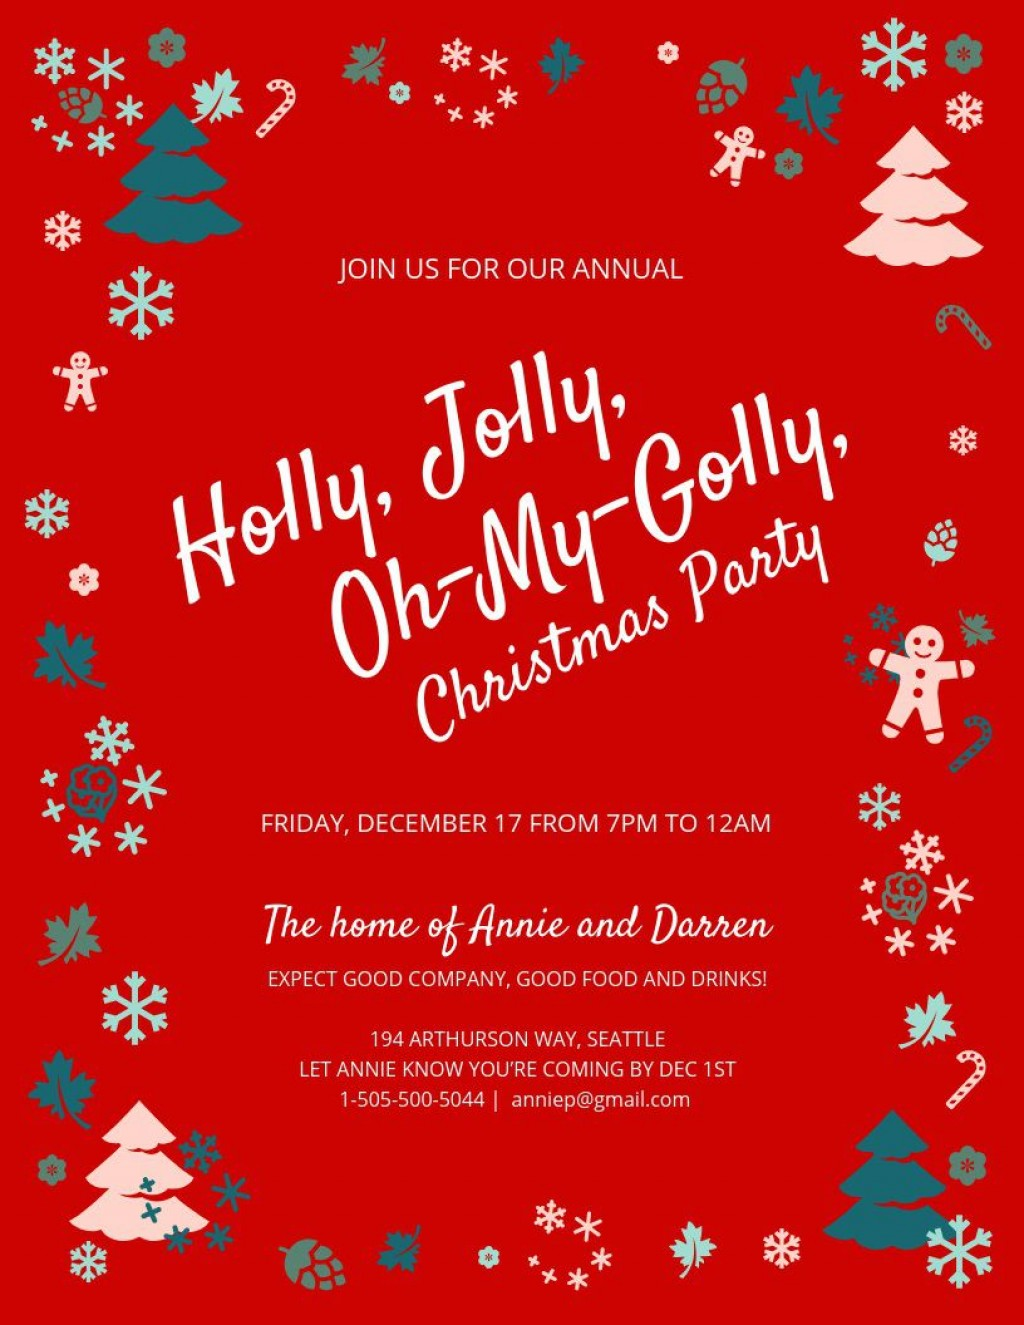 003 Awesome Christma Party Invitation Template Highest Clarity  Holiday Download Free PsdLarge